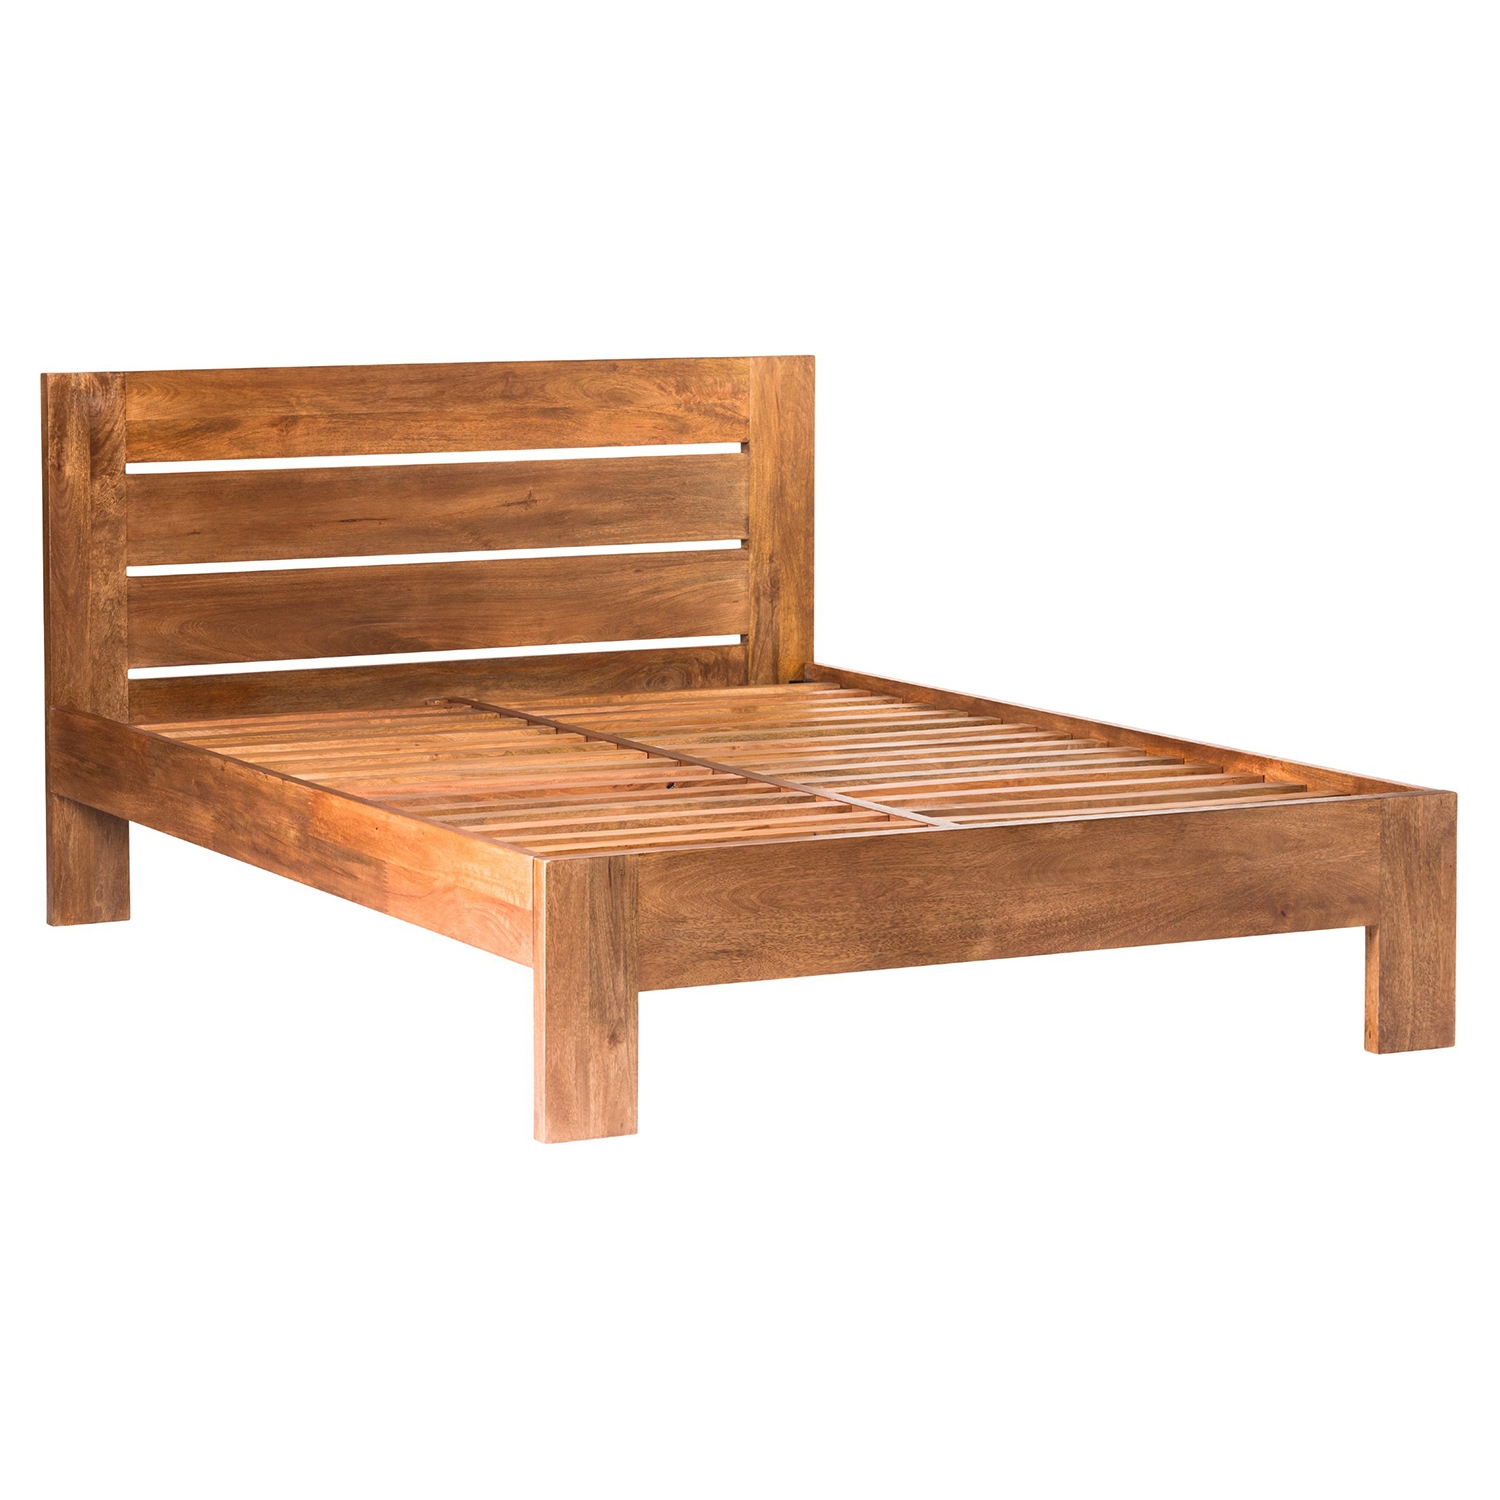 Anton Platform Bed - Natural - MOES-SR-10-24